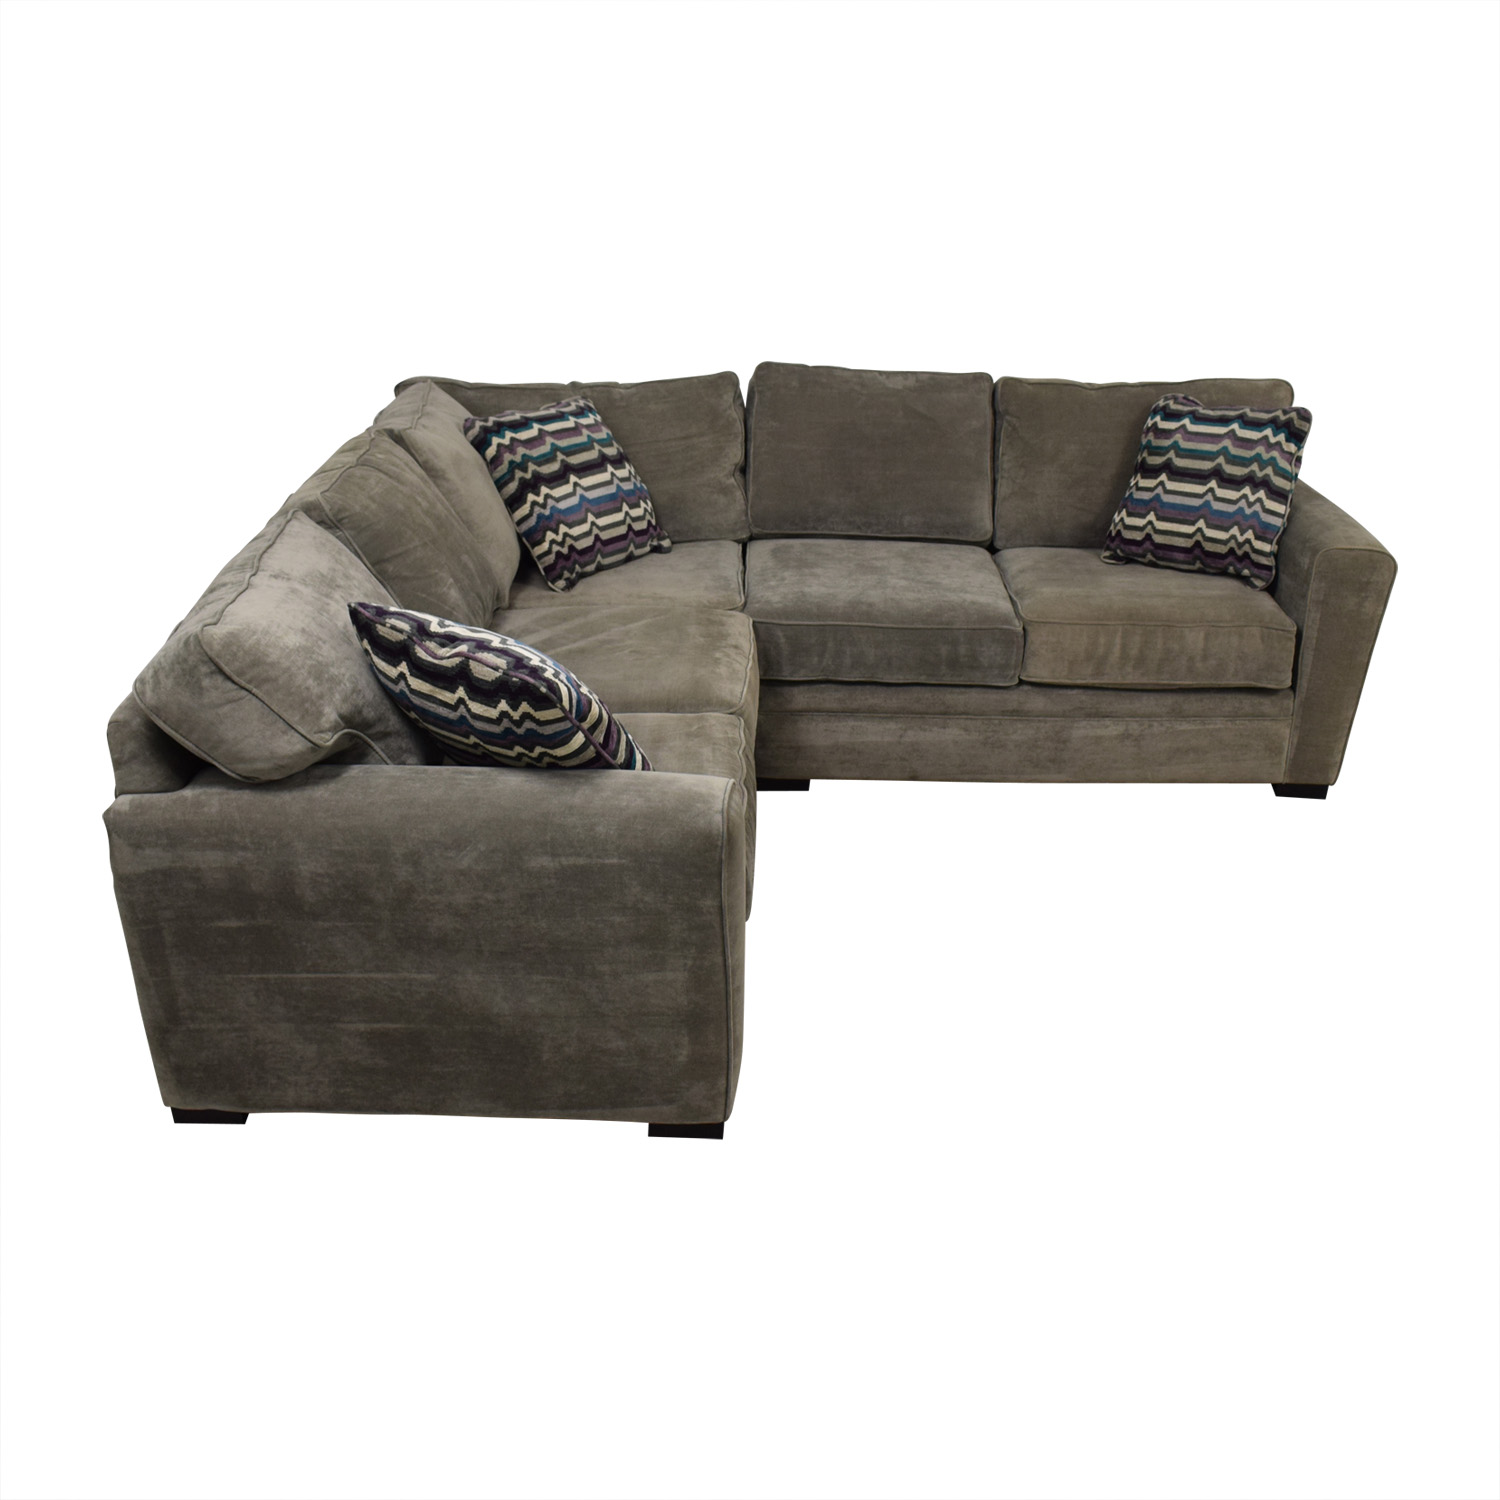 shop Raymour & Flanigan Artemis II Gray Microfiber L-Shaped Sectional Sofa Raymour & Flanigan Sectionals